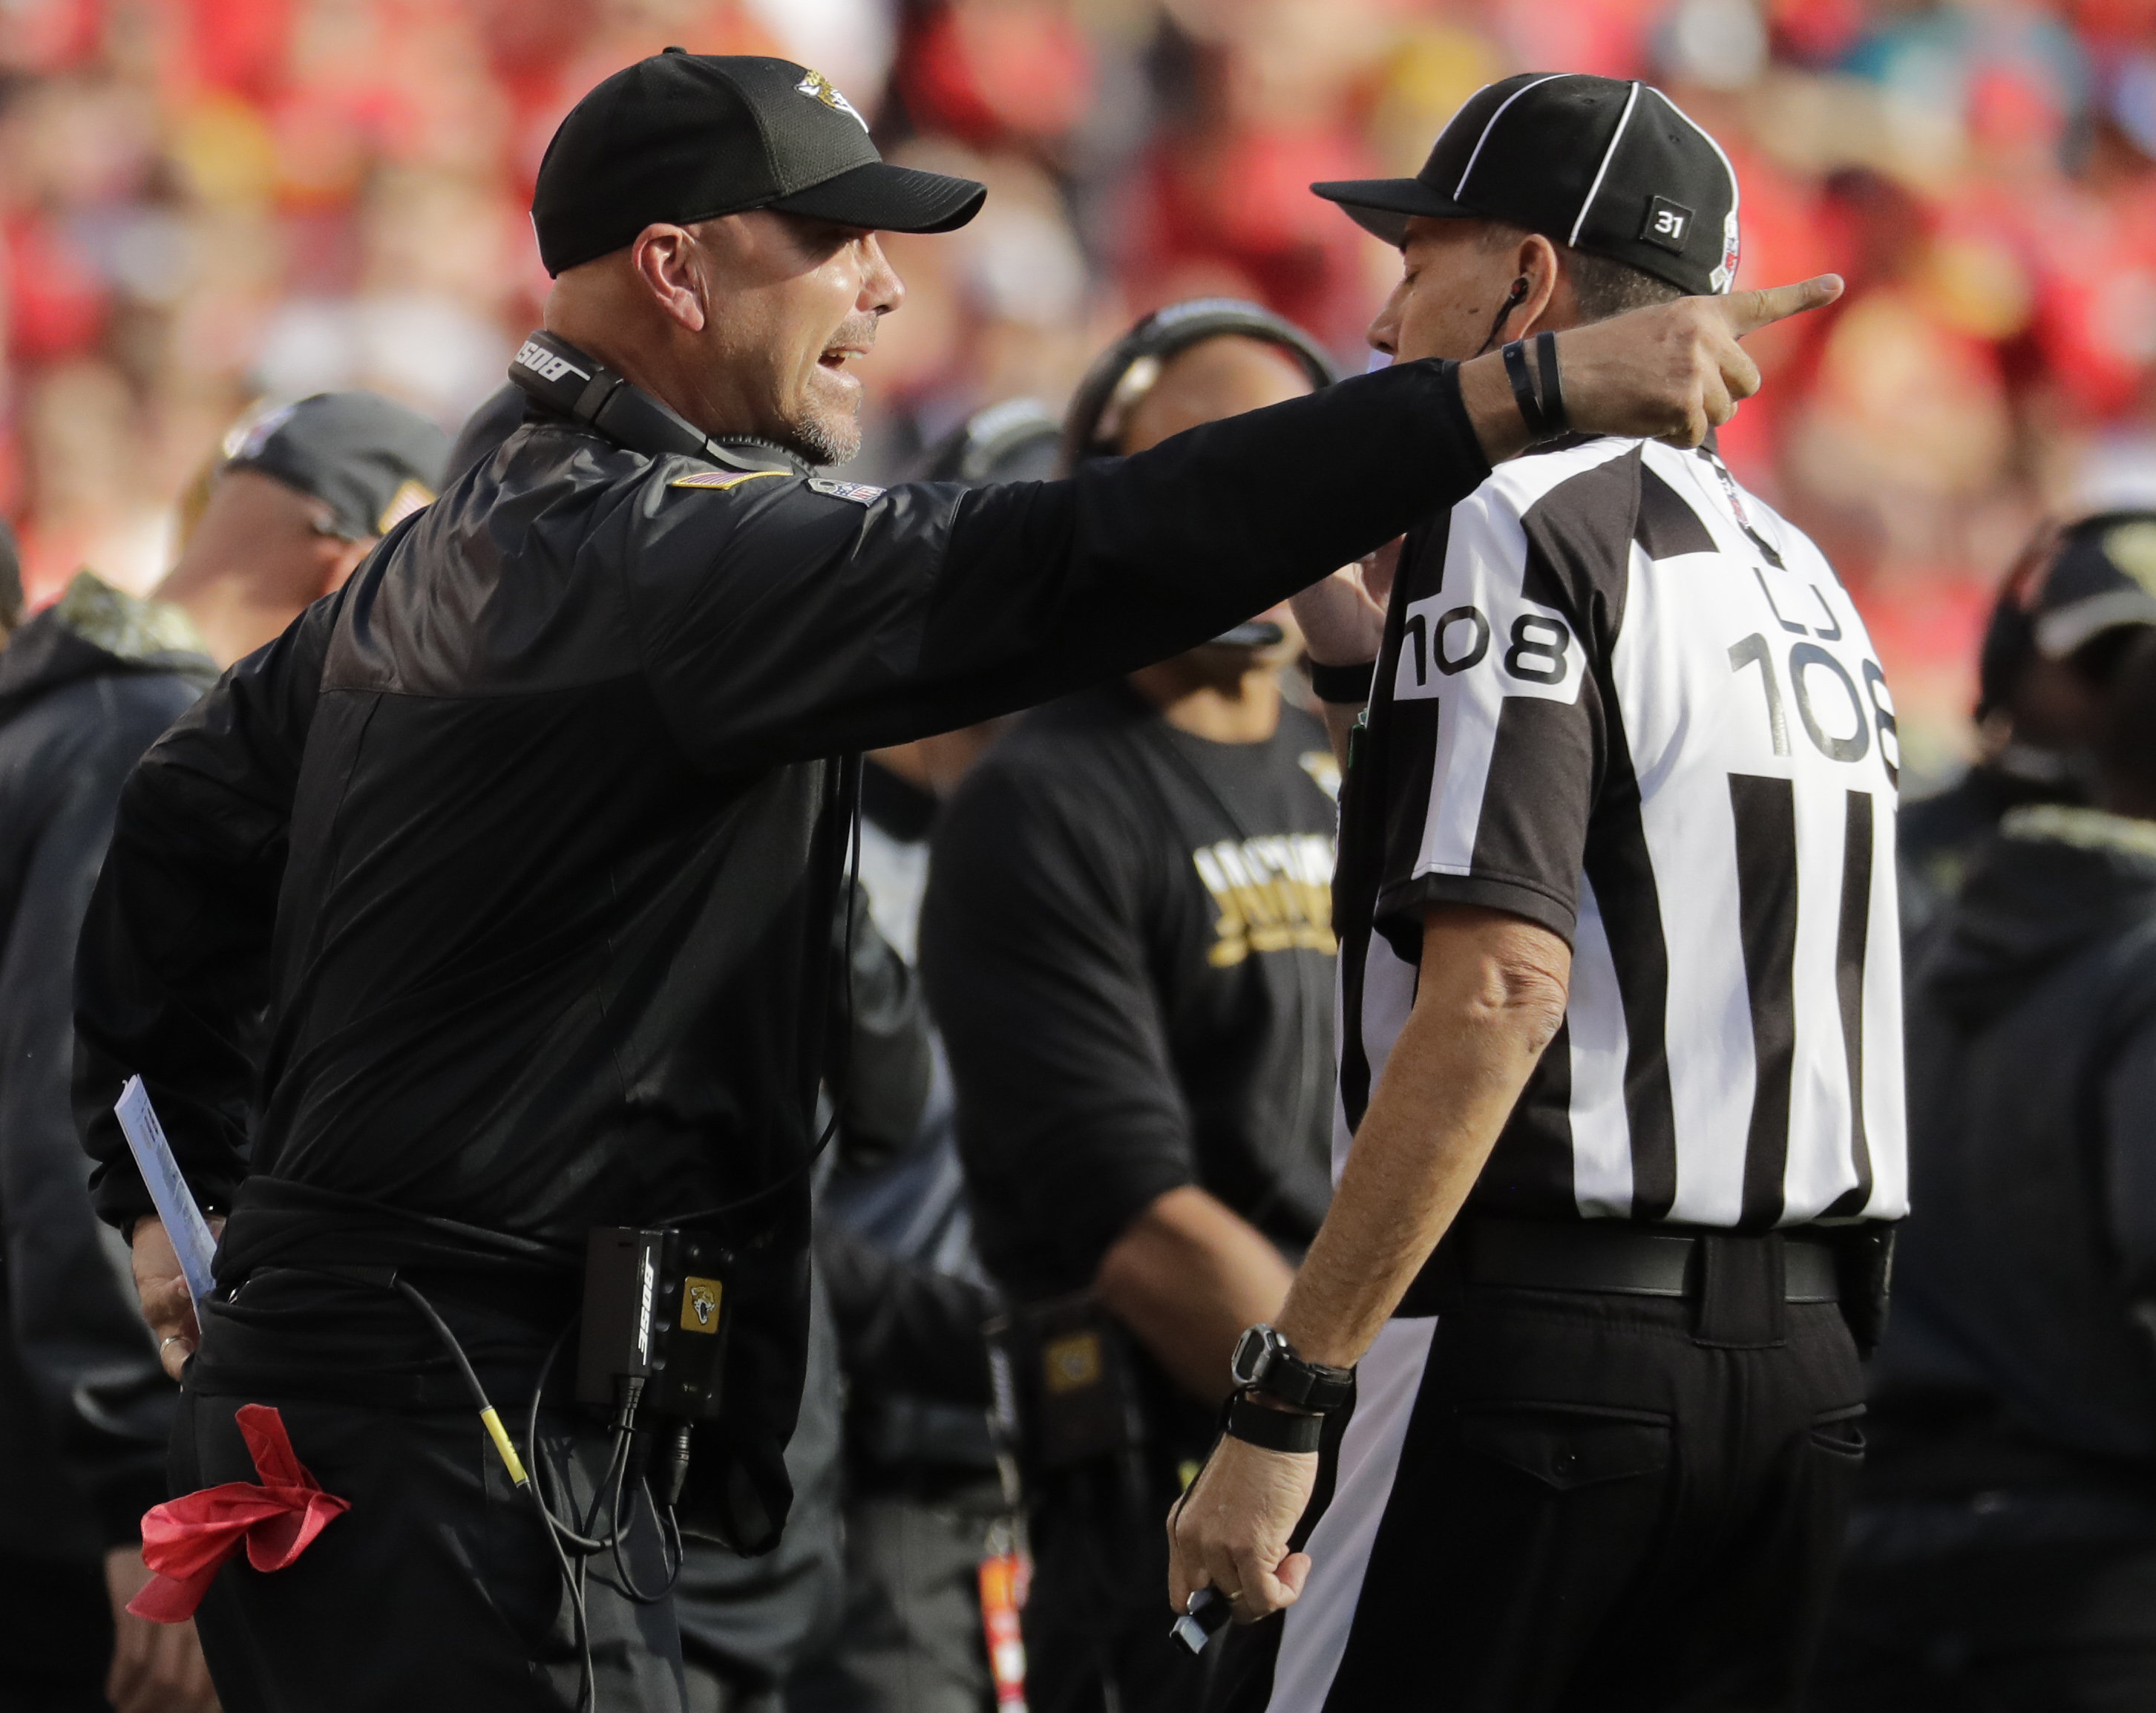 Jacksonville Jaguars head coach Gus Bradley, left, talks to line judge Gary Arthur (108) during the second half of an NFL football game against the Kansas City Chiefs in Kansas City, Mo., Sunday, Nov. 6, 2016. (AP Photo/Charlie Riedel)